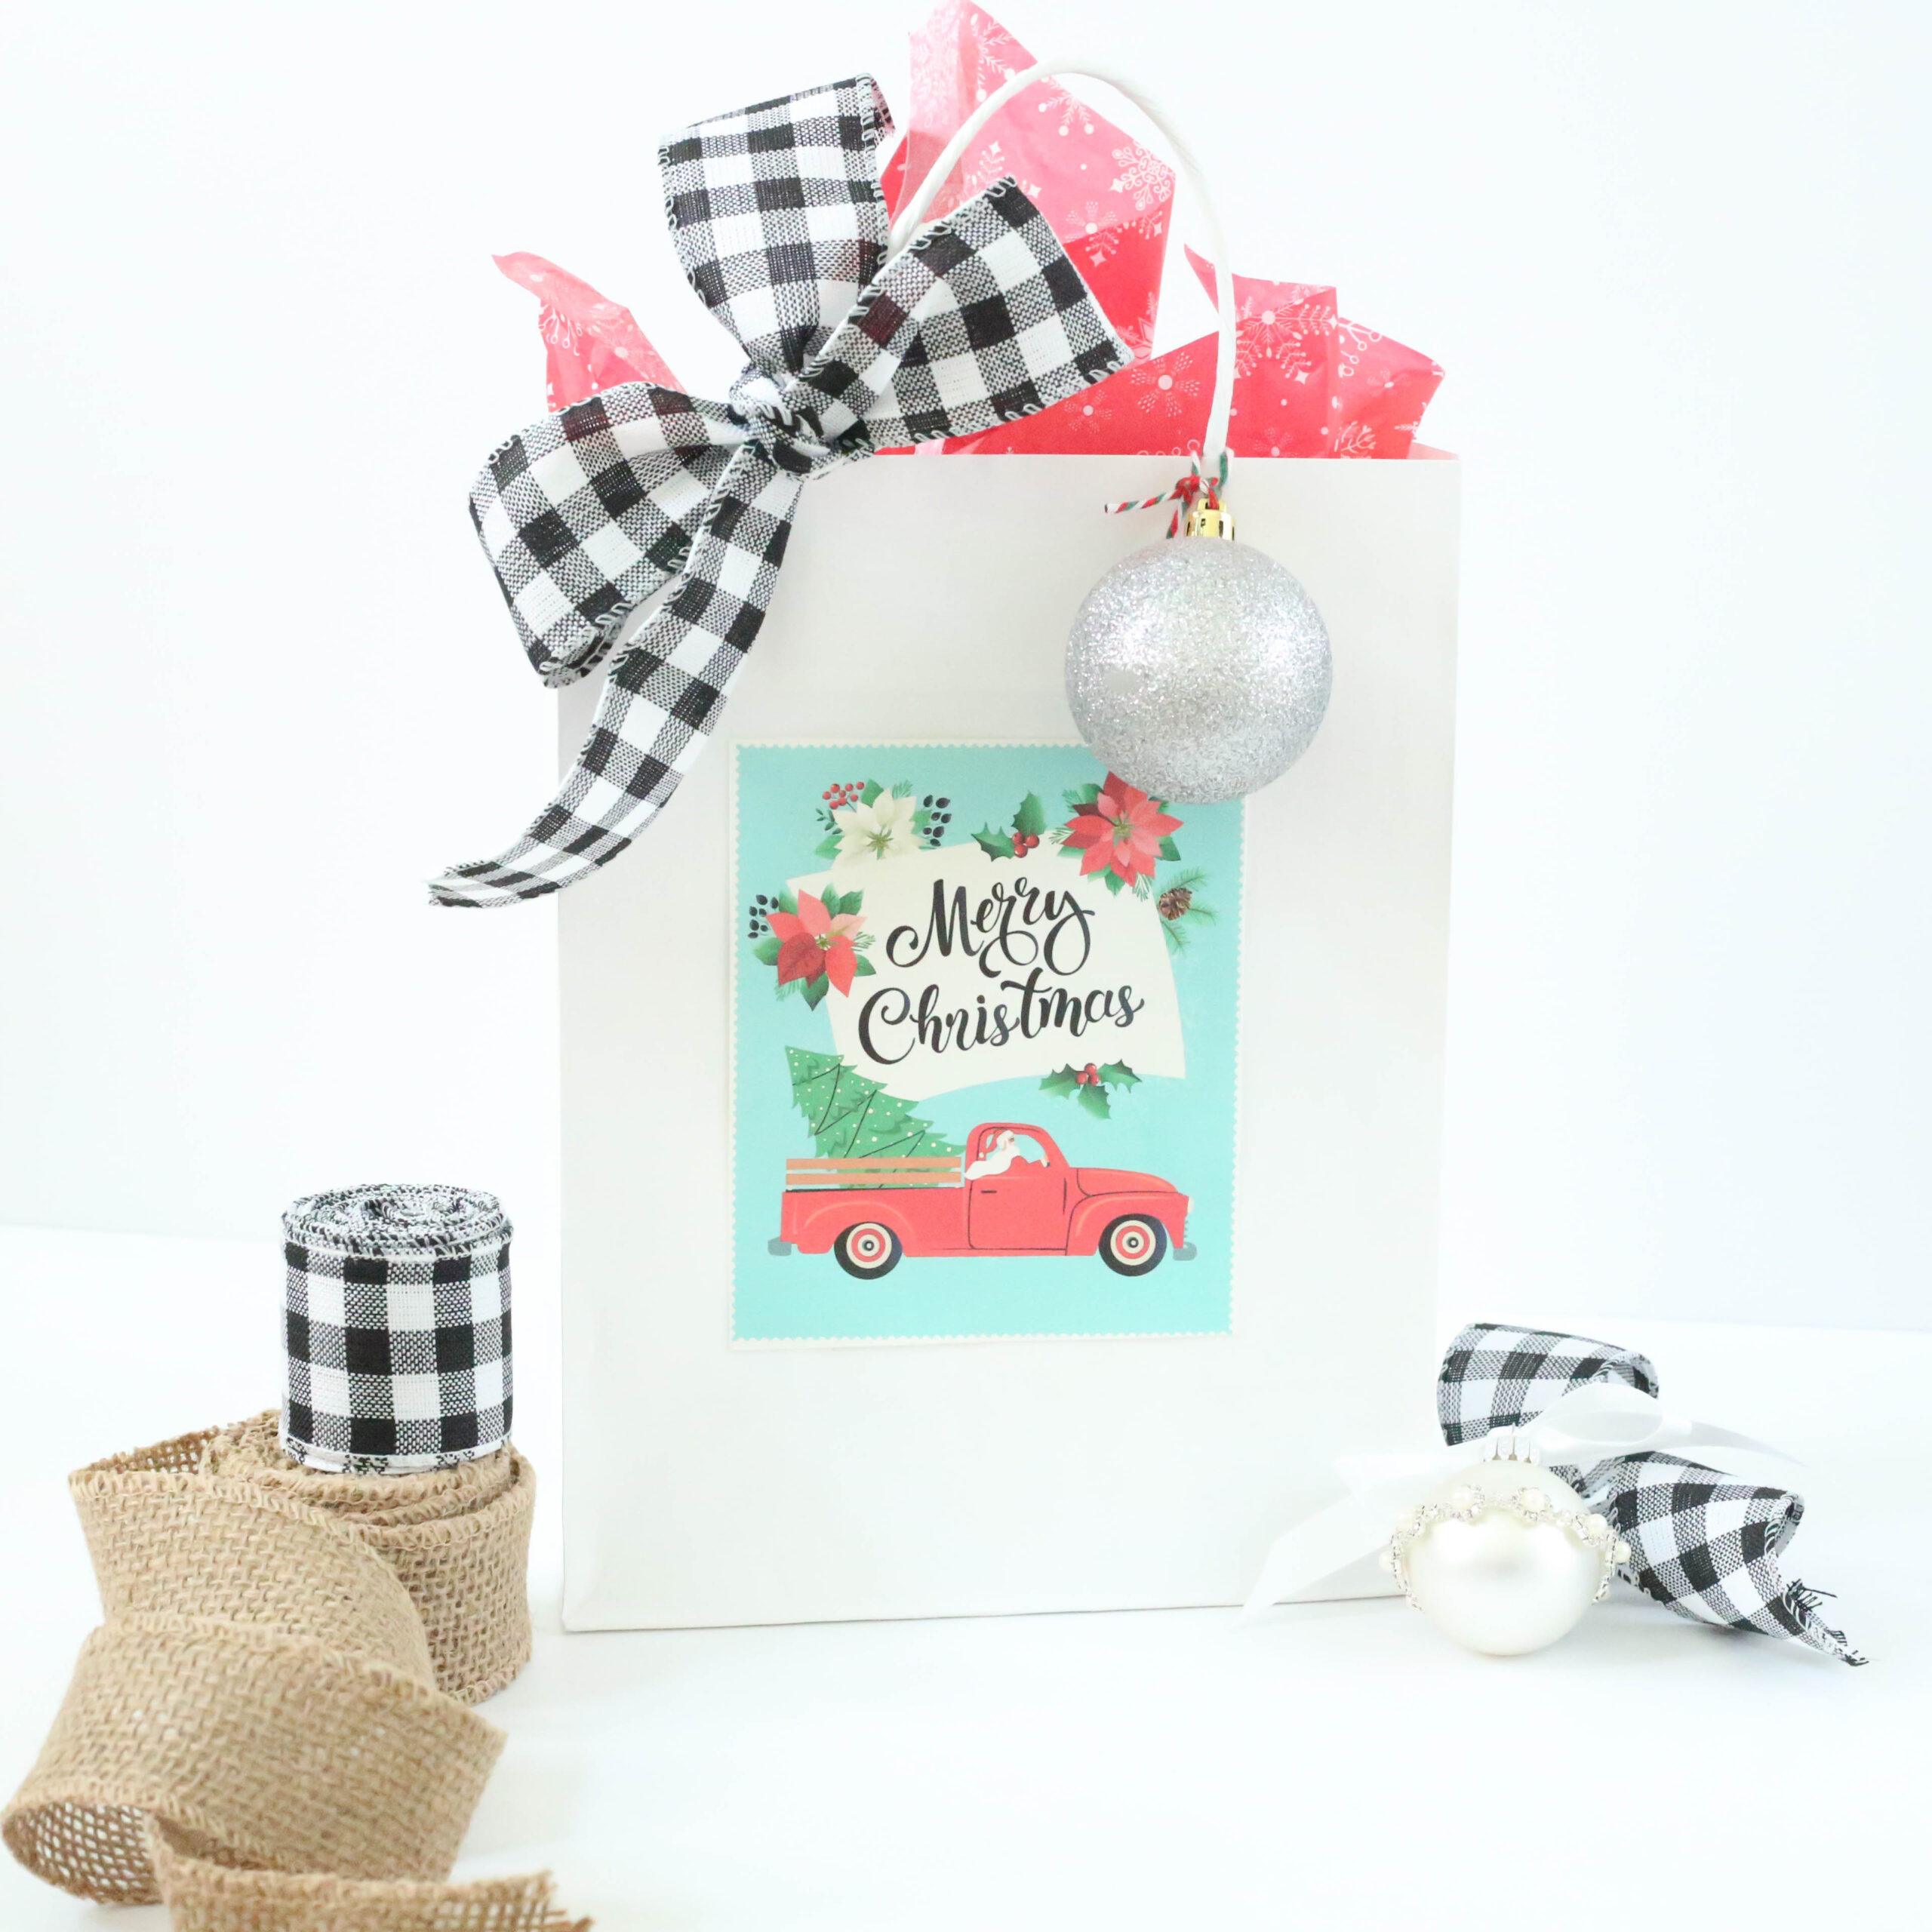 custom packaging for holiday gifts